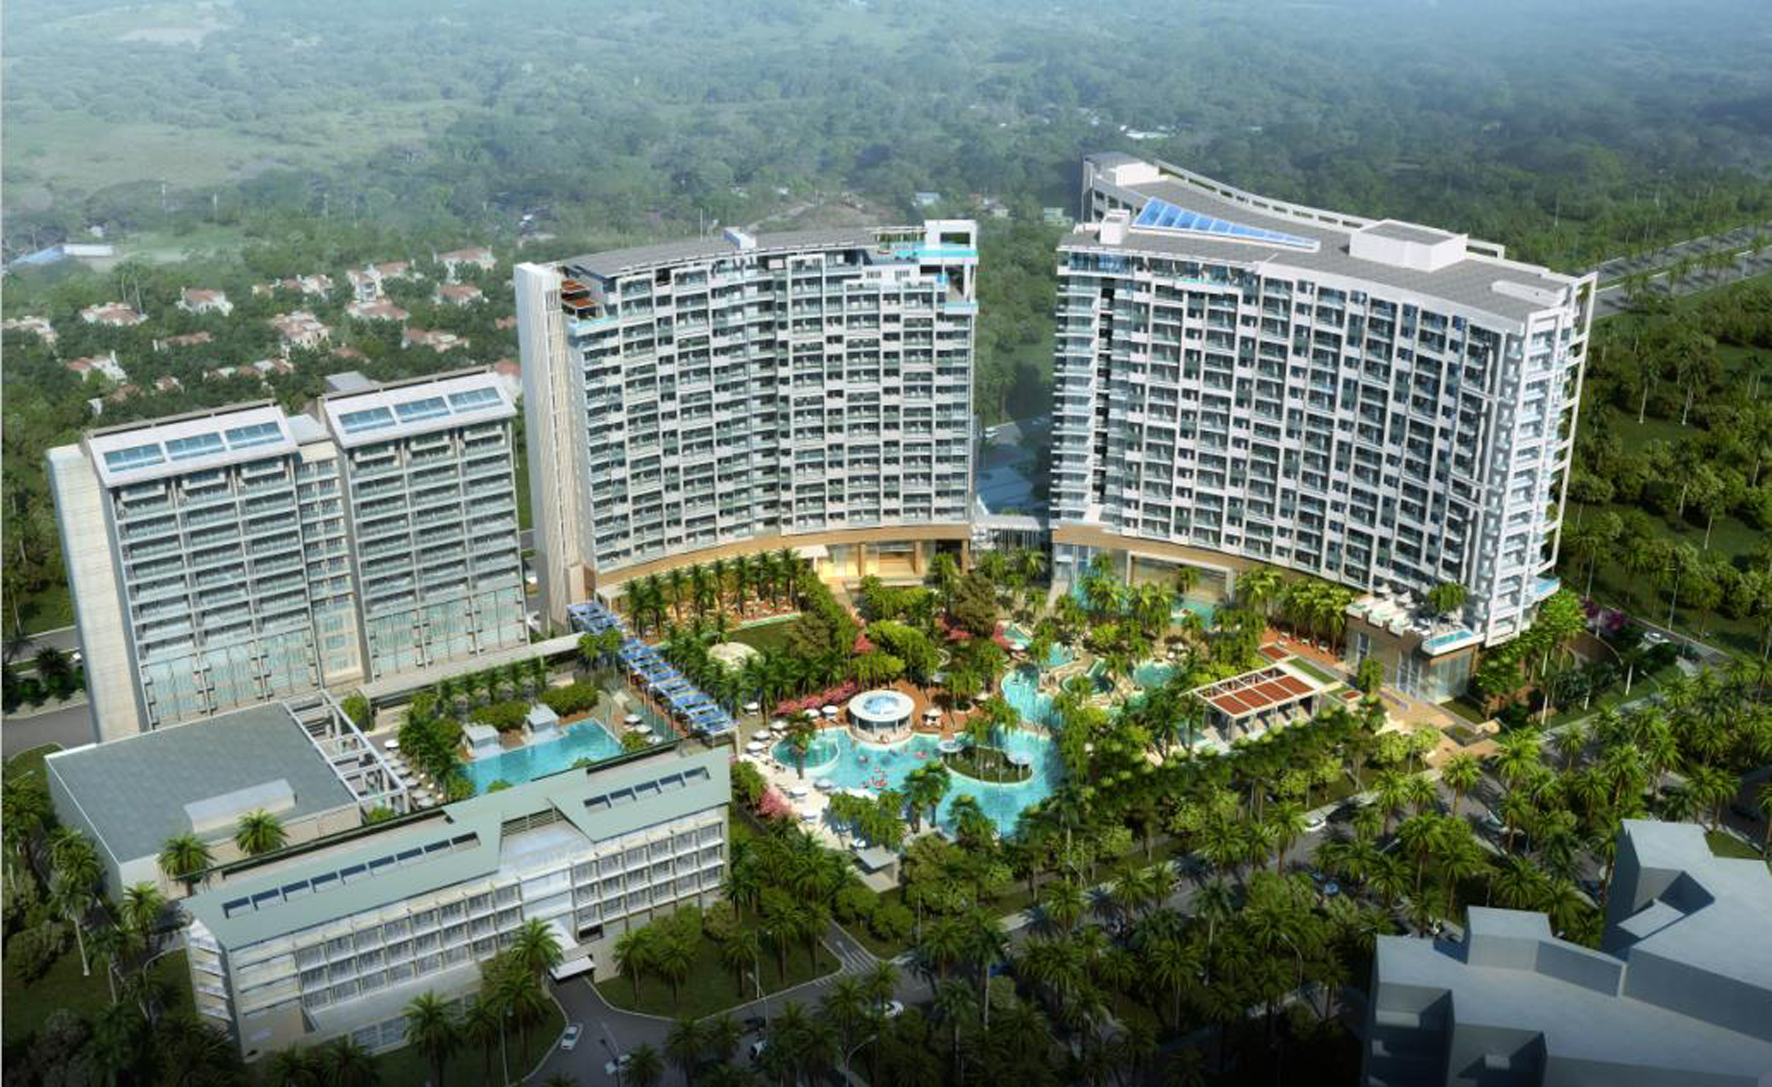 Wyndham hotel group expands upscale wyndham brand in china for Wyndham at home